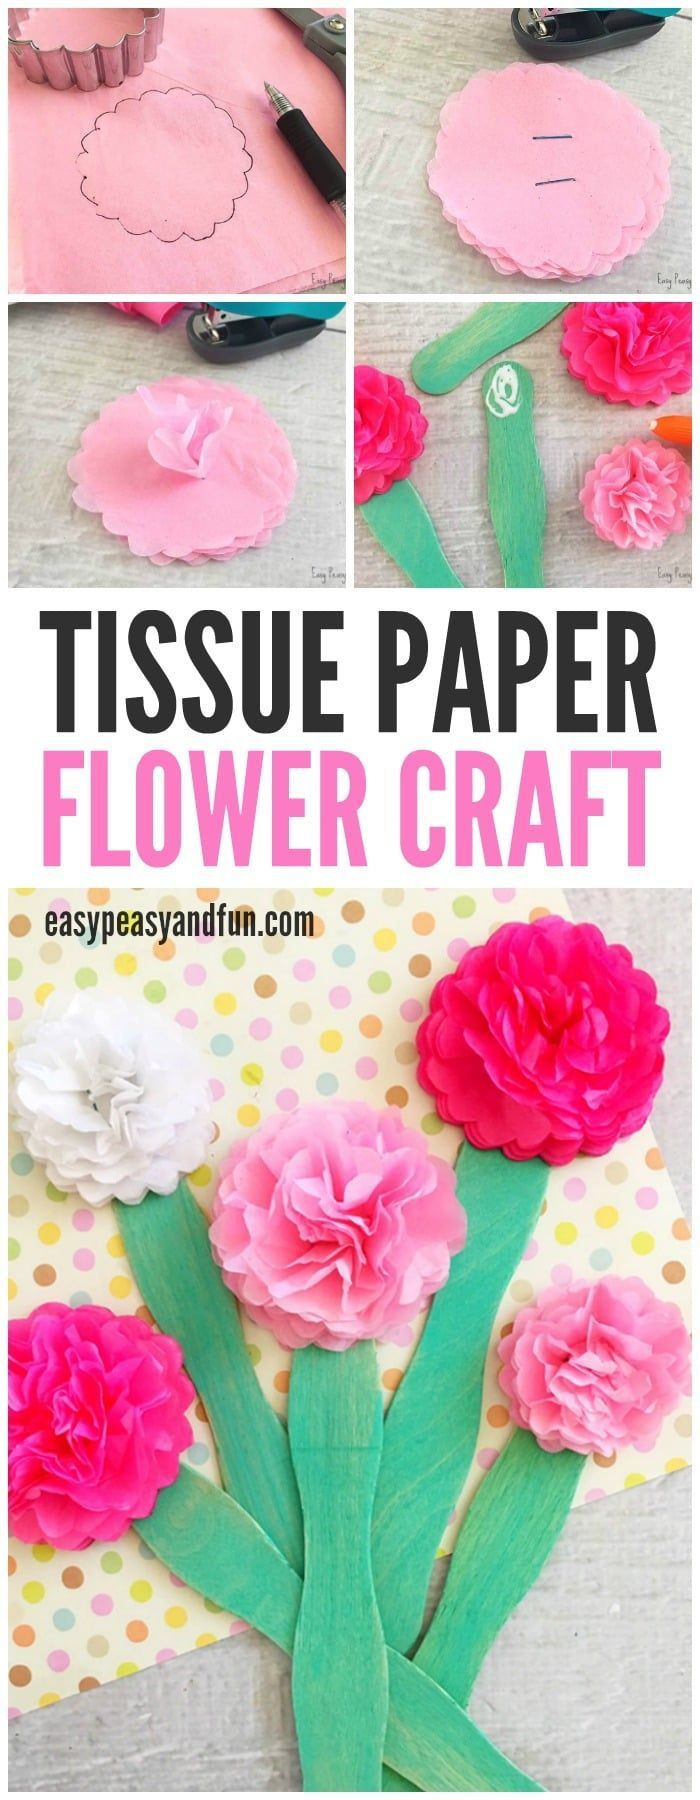 Tissue Paper Flower Craft Crafts Flowers Pinterest Flower